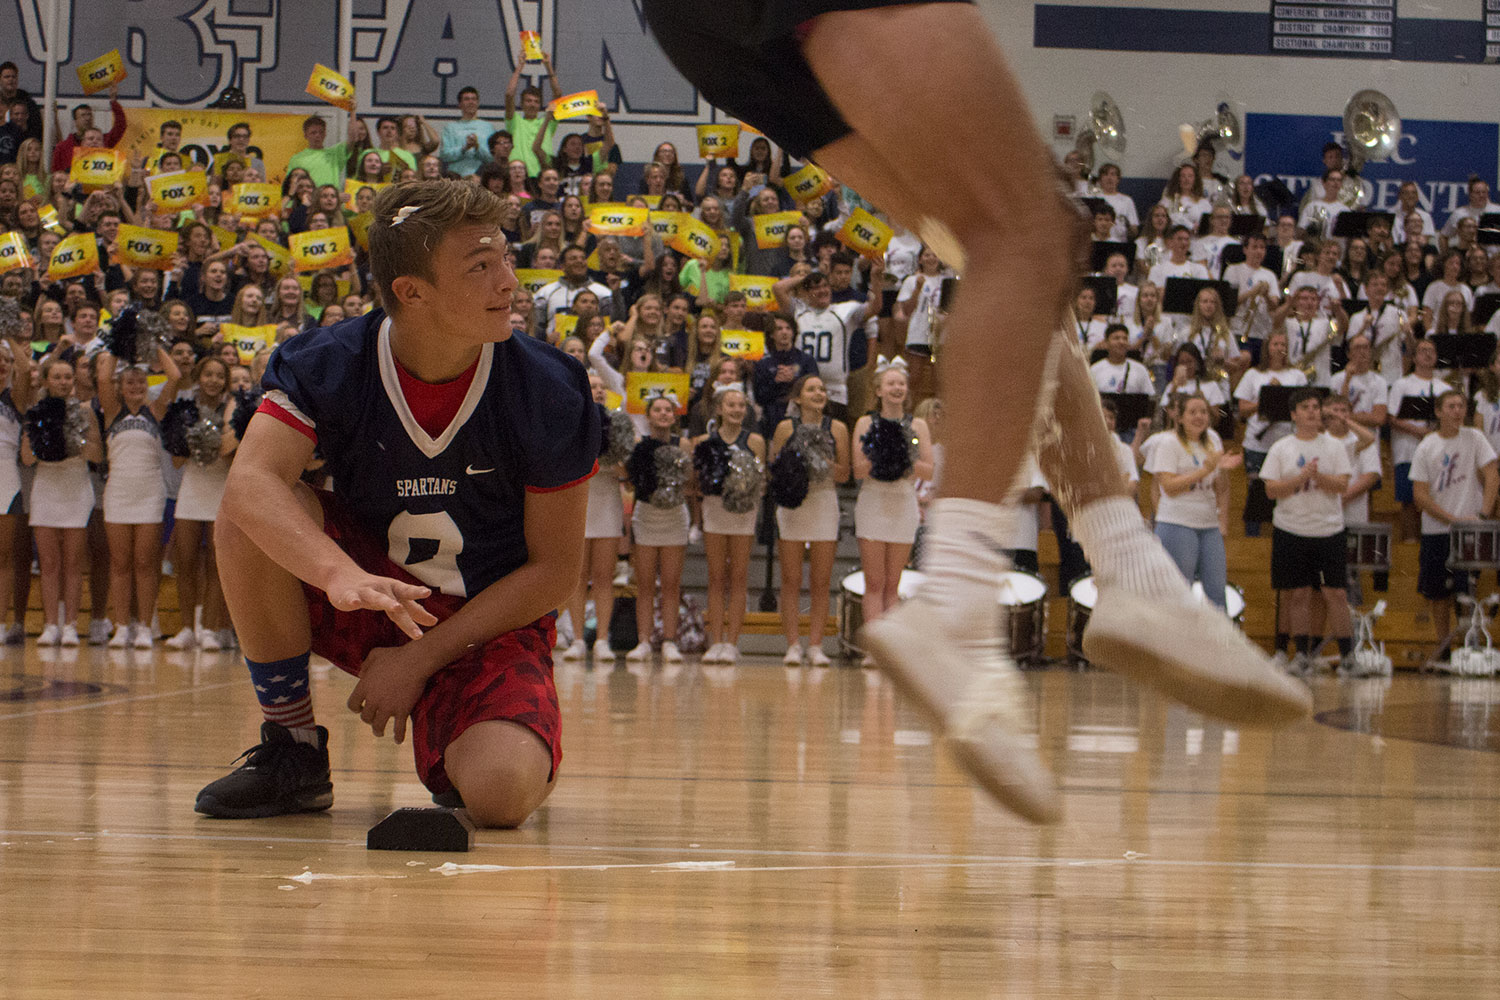 Freshman, Aidan Hernandez watches as Senior Sam Newton hurdles the ball into the arms of the FHC coaches. On friday the 13th of september the student of Francis Howell Central gathered in the gymnasium to support their school. Fox 2 news made an appearance at the high schools pep rally,and all the students couldn't have been more excited.